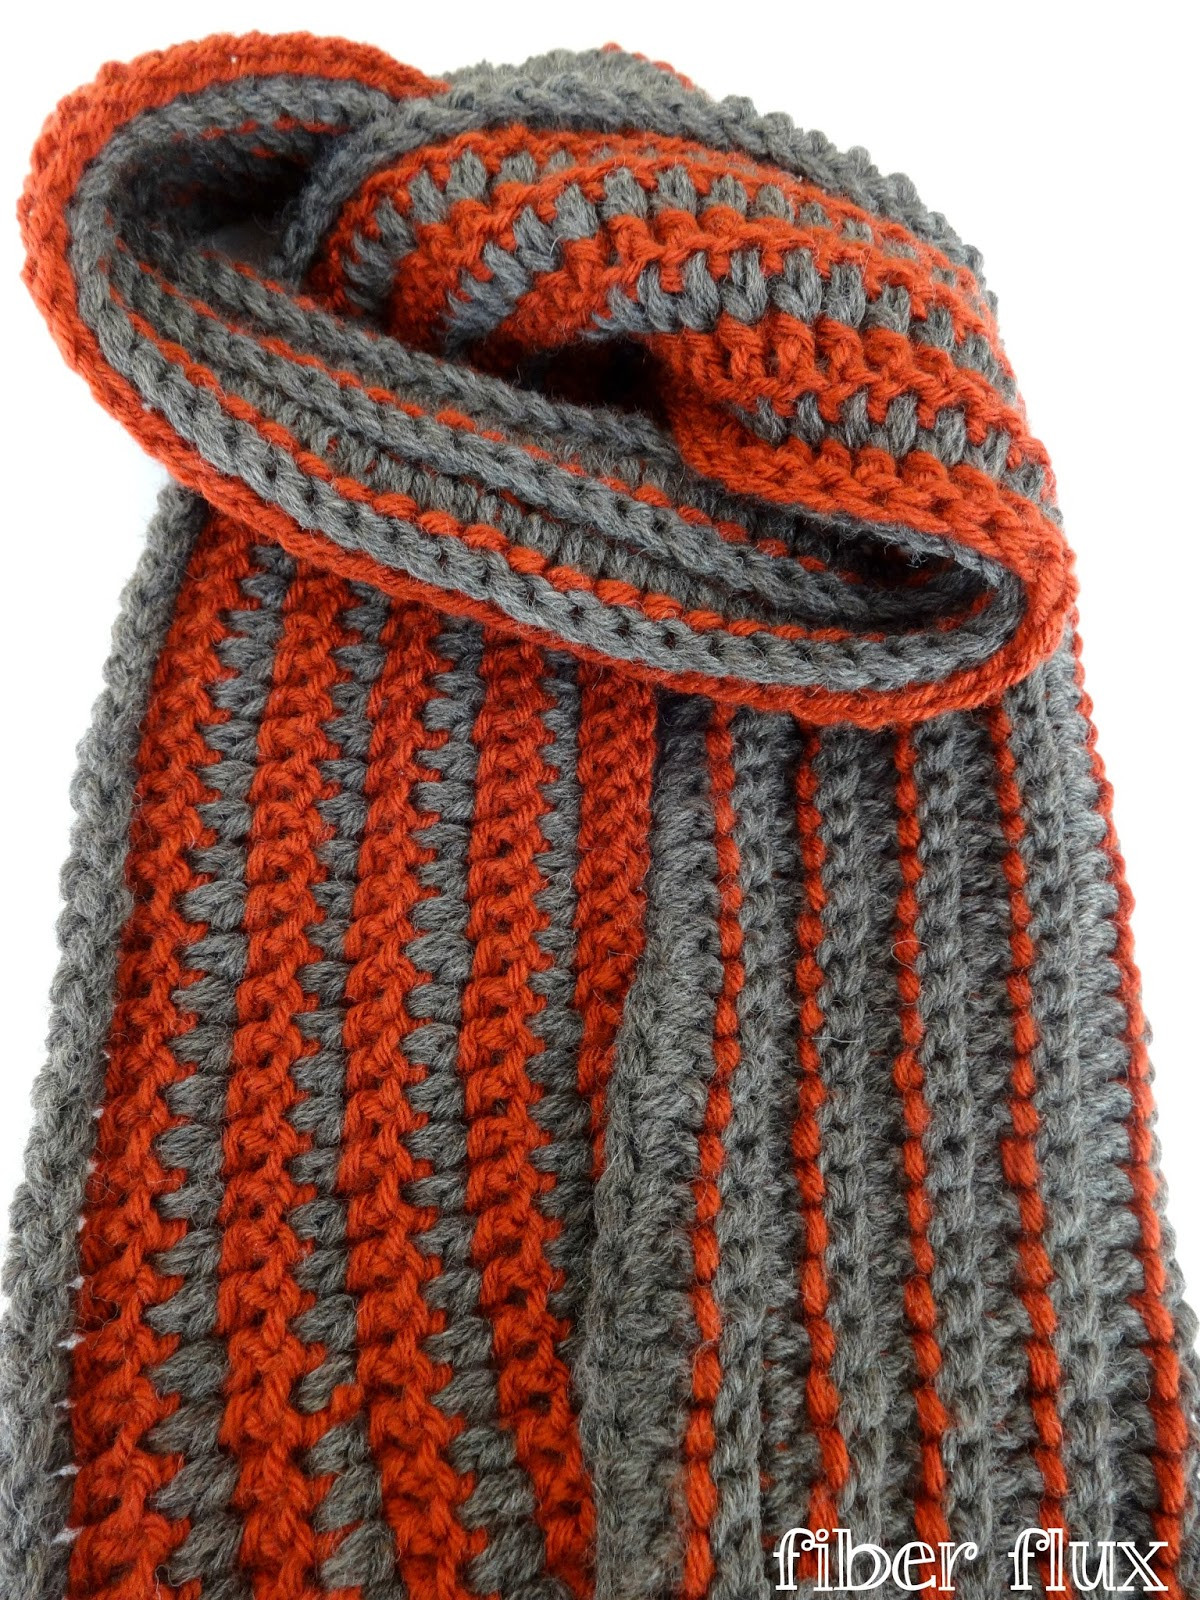 Crochet Scarf Elegant Fiber Flux Free Crochet Pattern the Every Man Scarf Of Incredible 48 Images Crochet Scarf